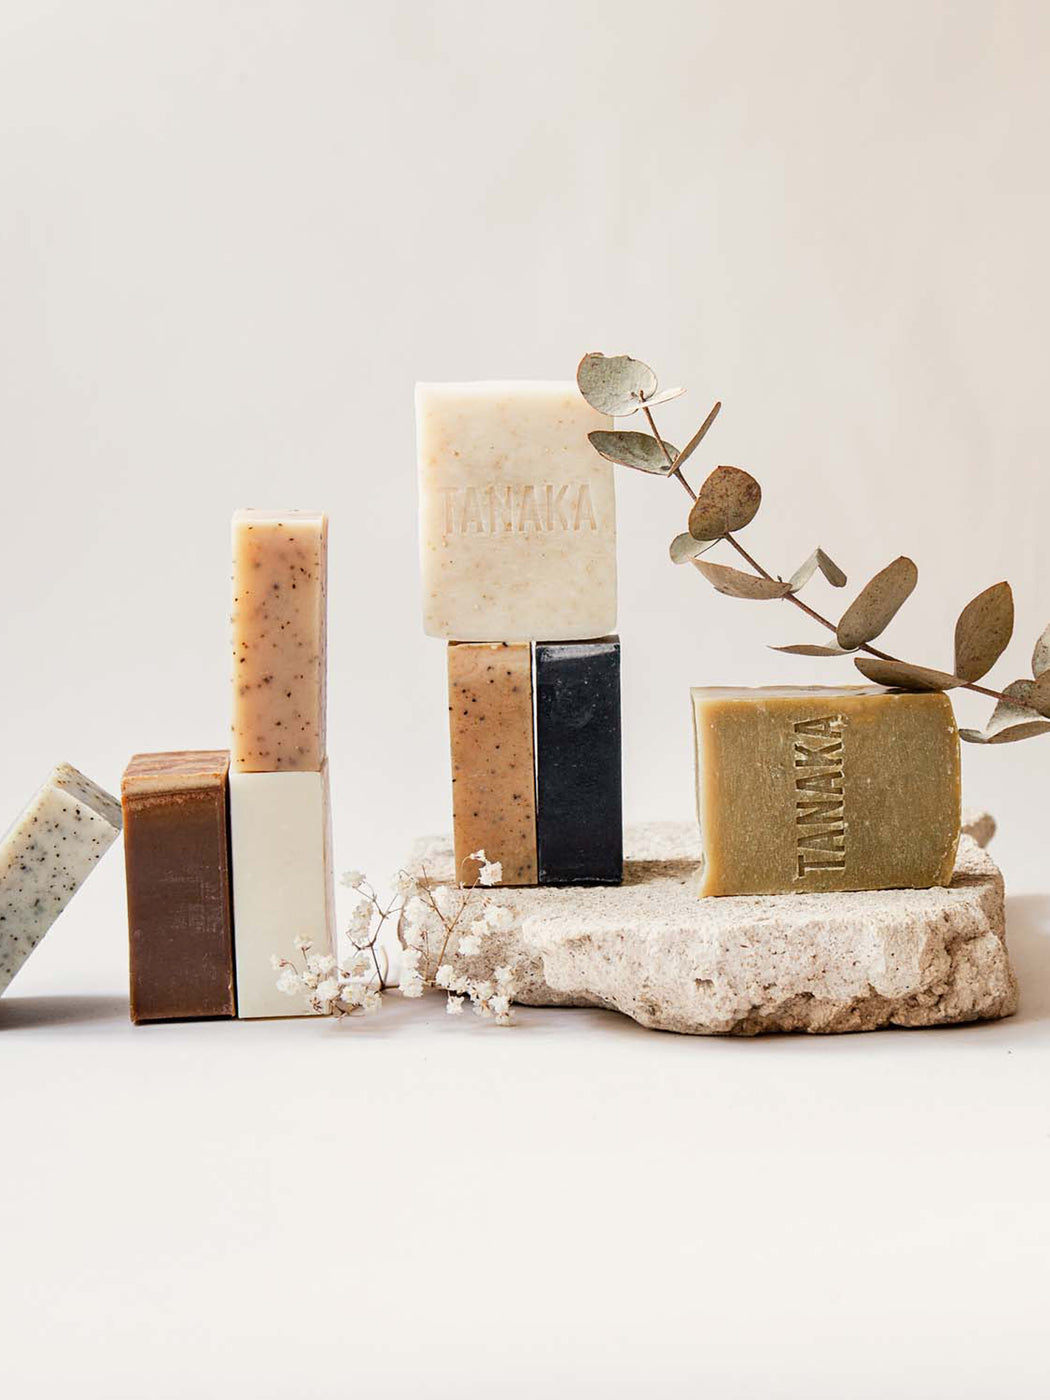 The Healing Bar - Handmade Natural Soap